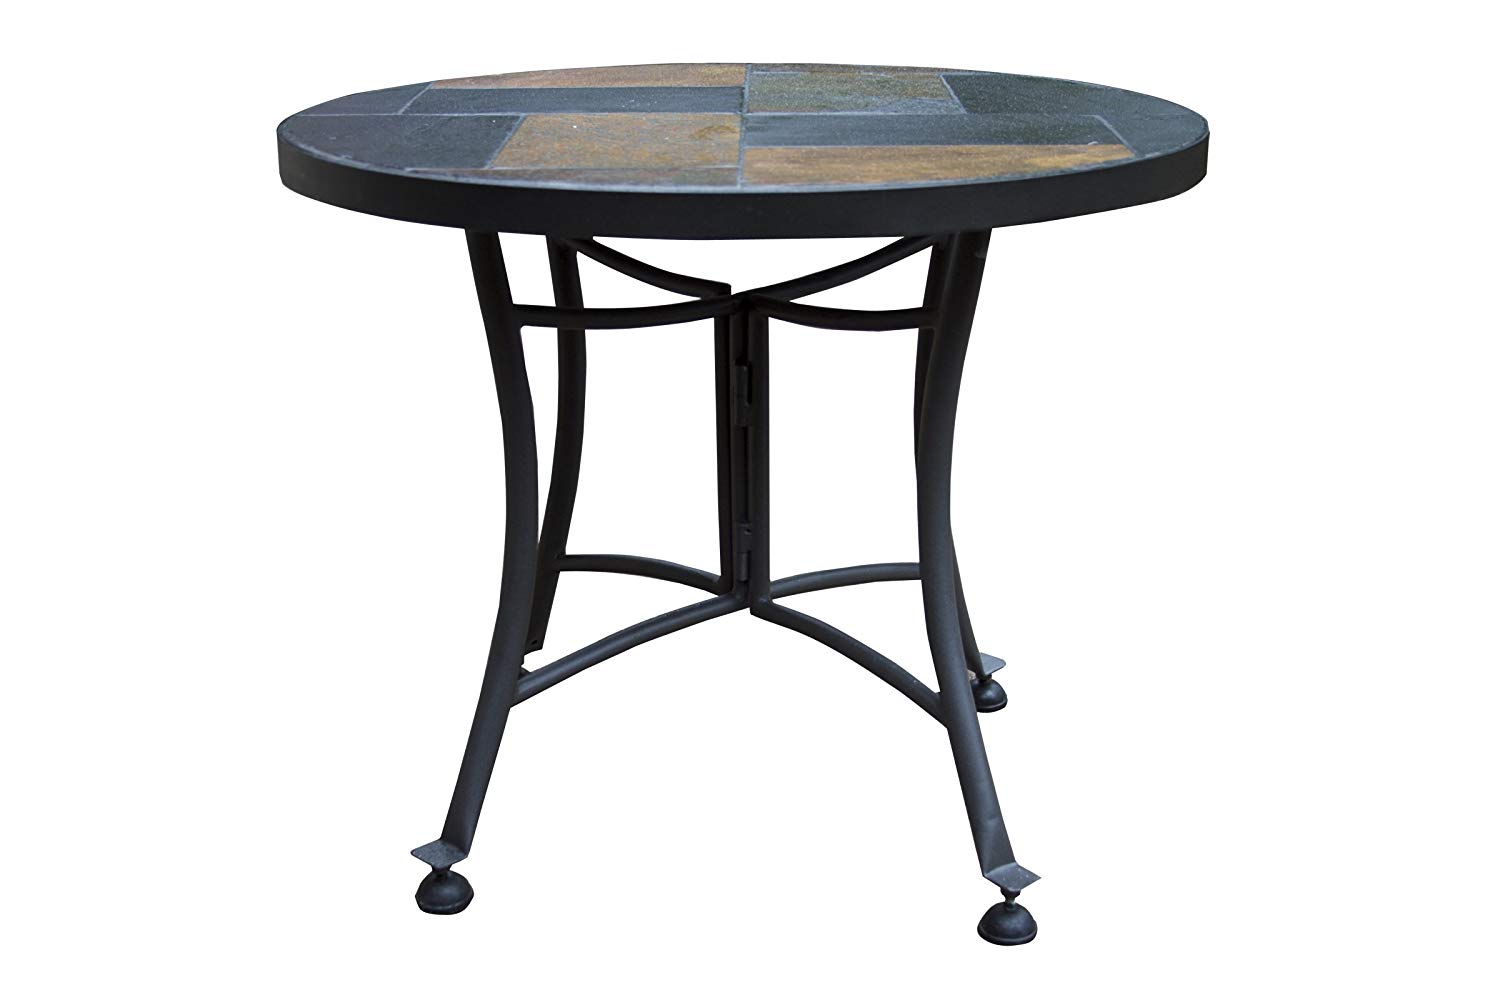 outdoor interiors slate mosaic accent table with metal cbwvql stone base inch charcoal garden desk trestle legs decorative trunks chestnut antique brass folding glass coffee wall